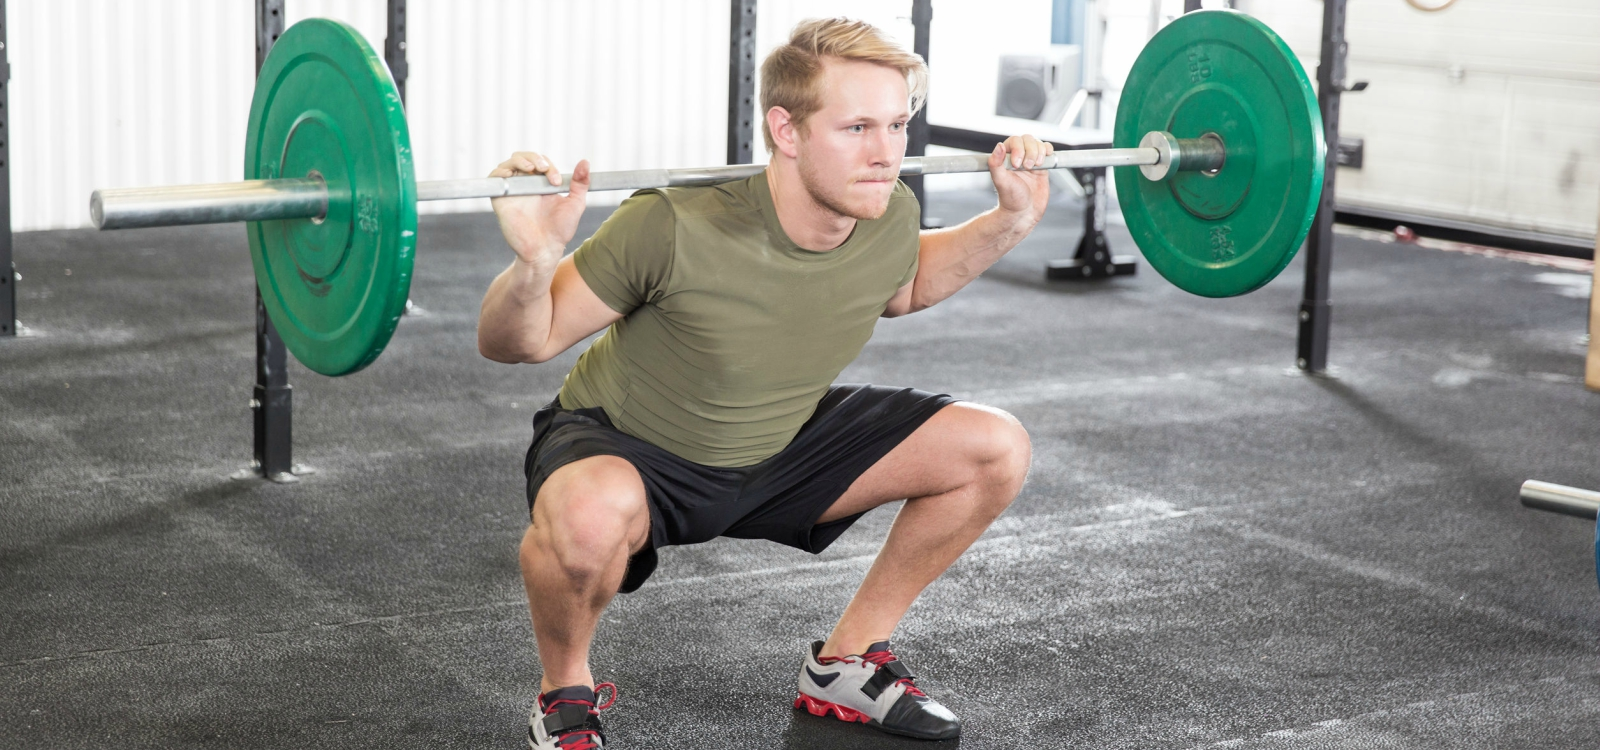 3 Science-Backed Leg Workouts for More Hypertrophy, Power, and Strength